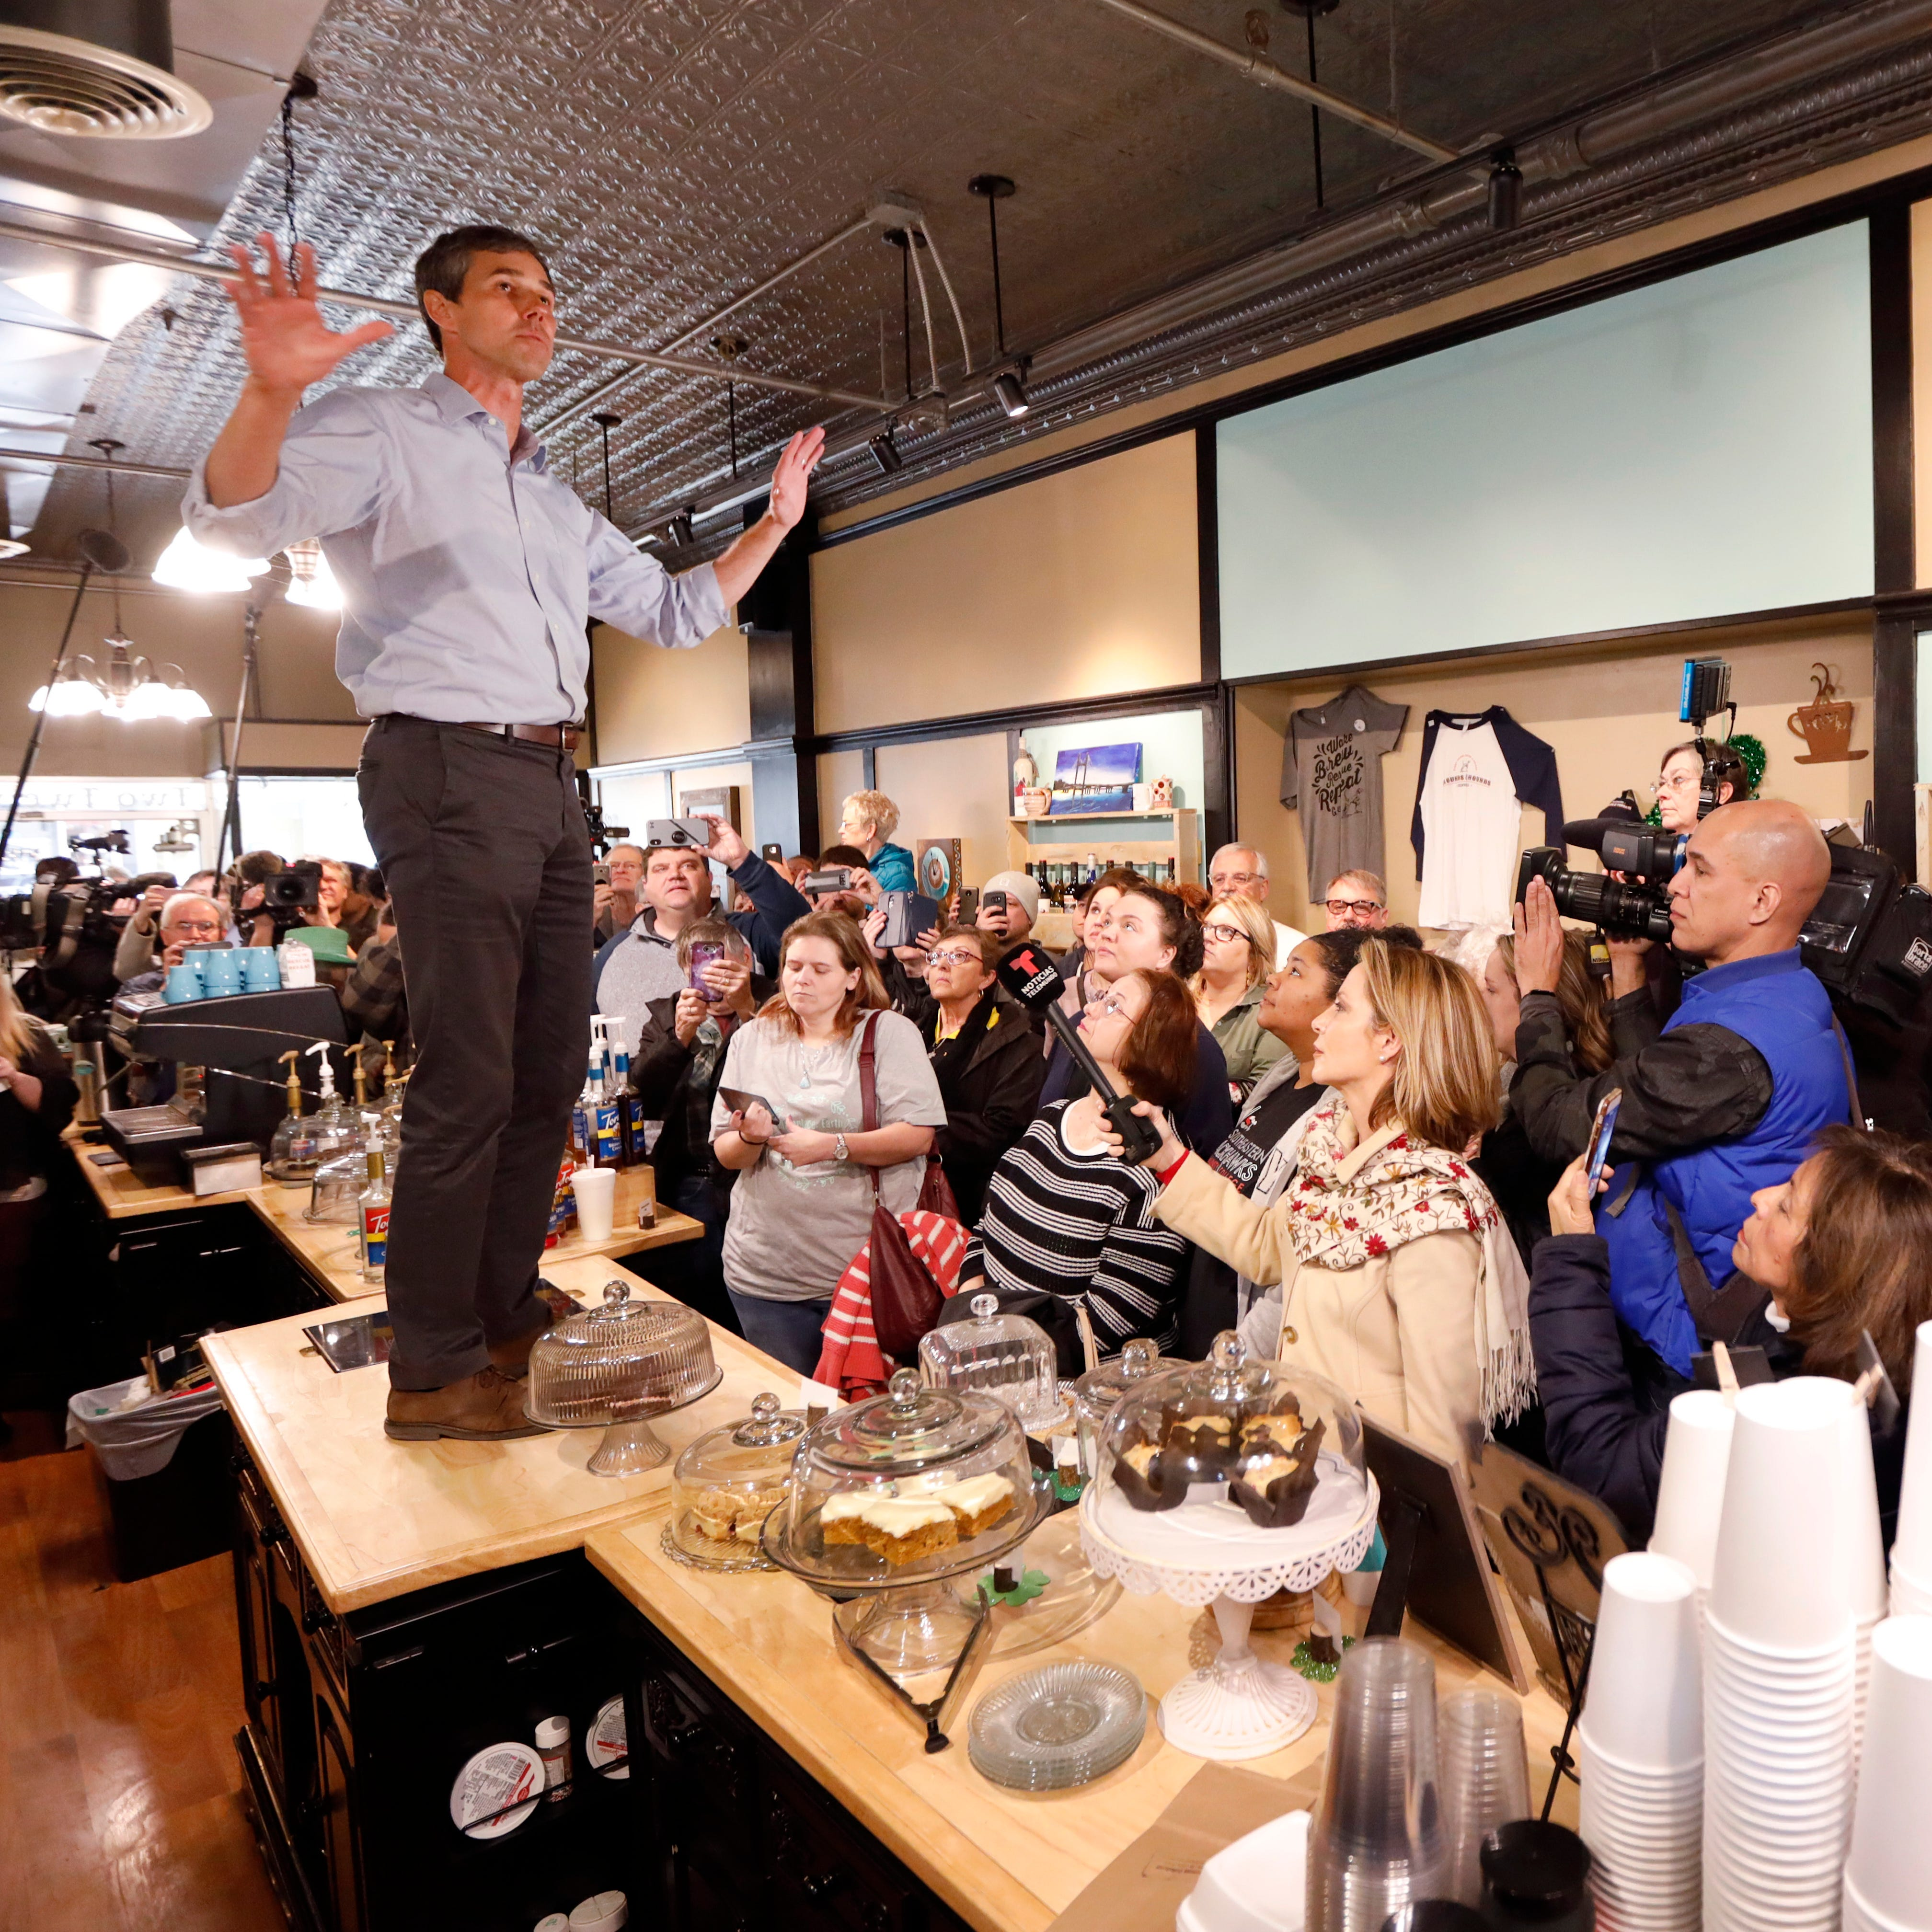 Beto O'Rourke, hours after announcing presidential run, holds high-energy, packed meetings with Iowans